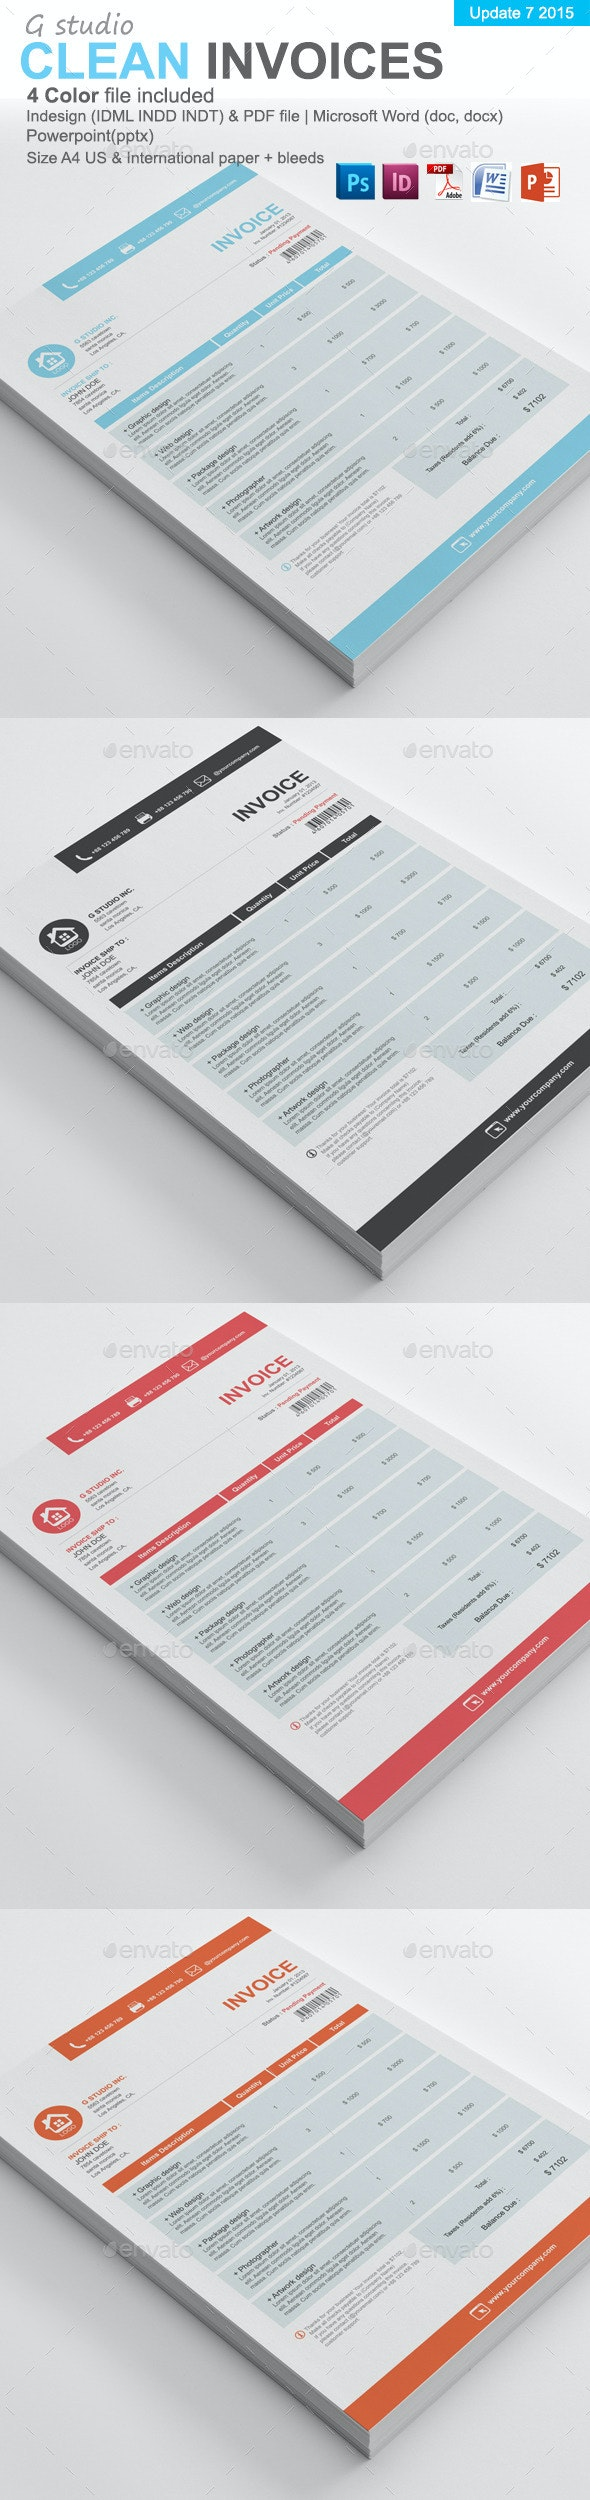 Gstudio Clean Invoices Template - Proposals & Invoices Stationery